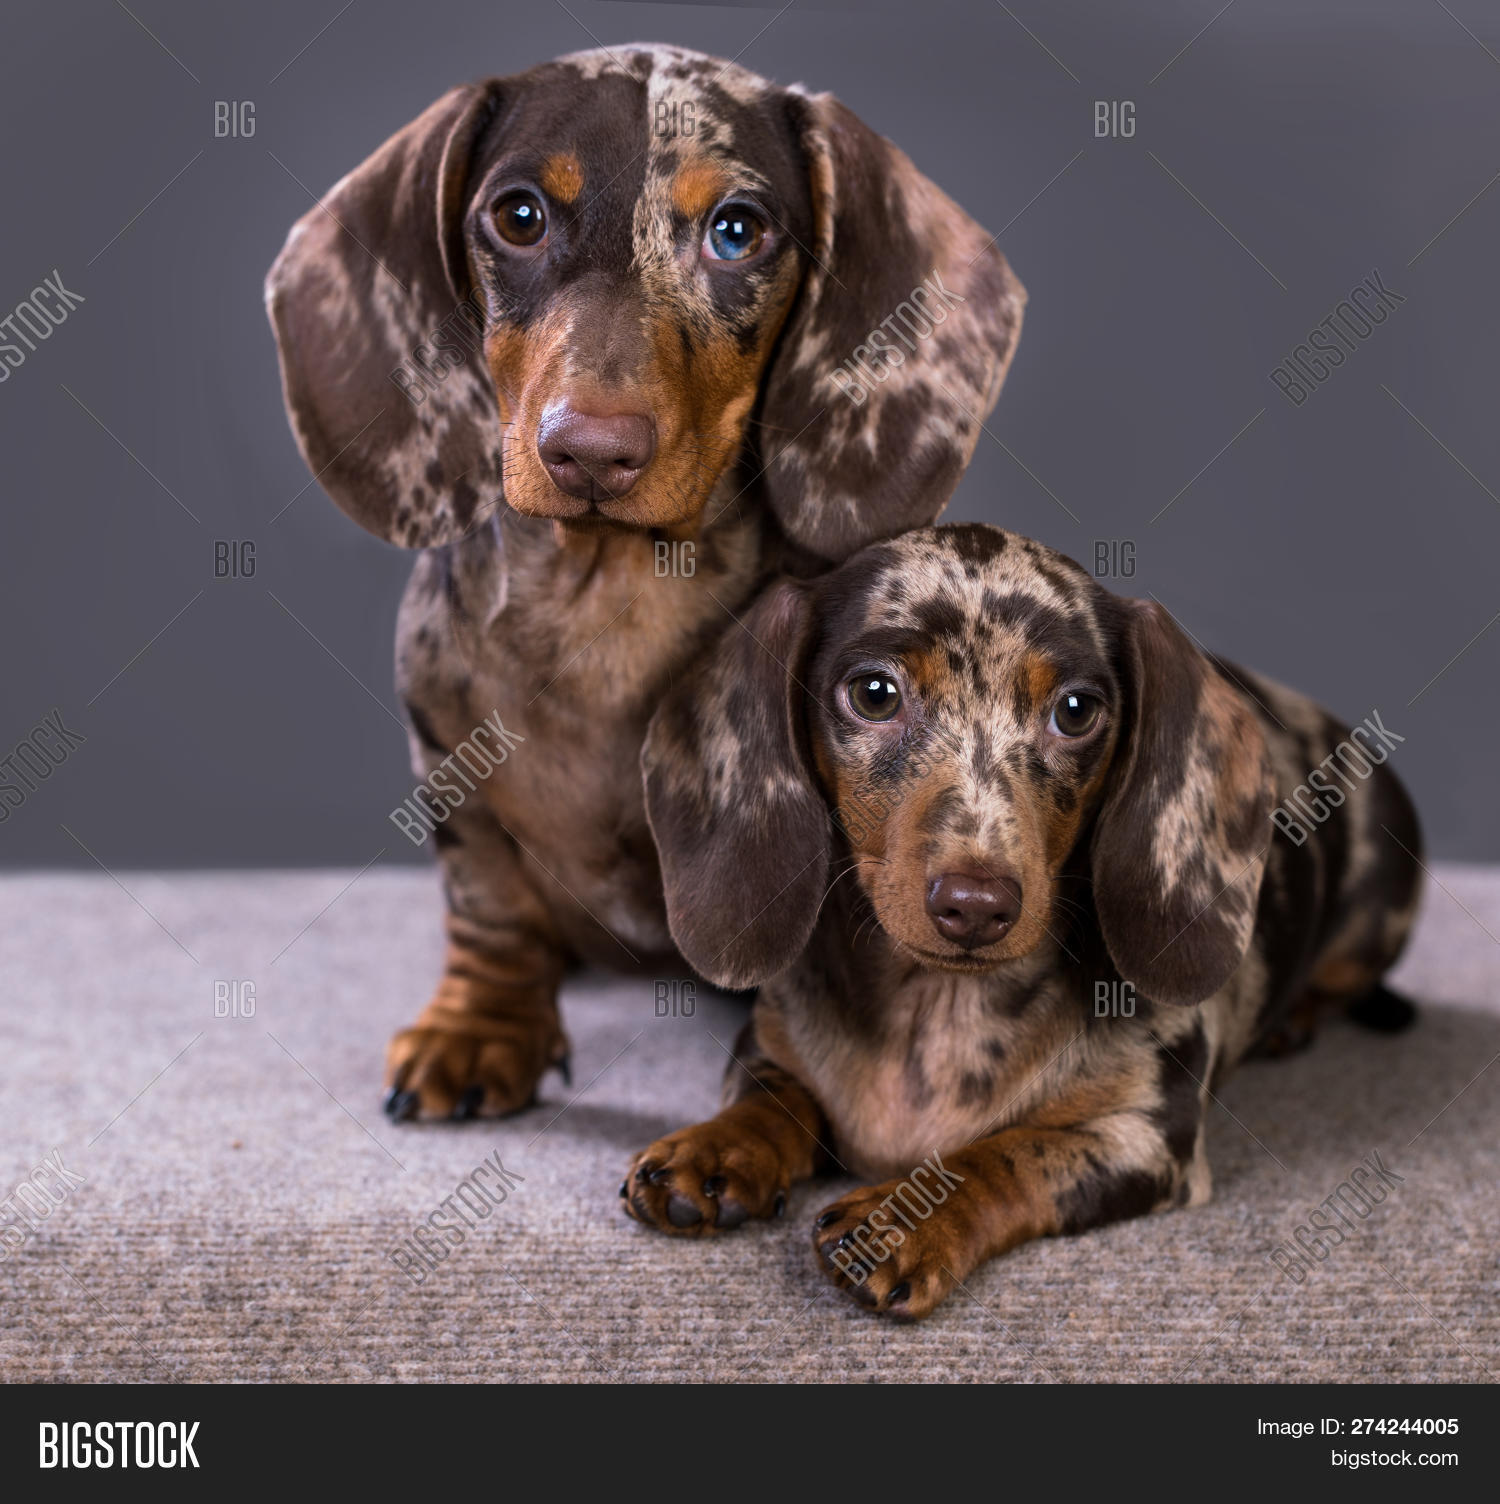 Dachshund Puppies Image Photo Free Trial Bigstock